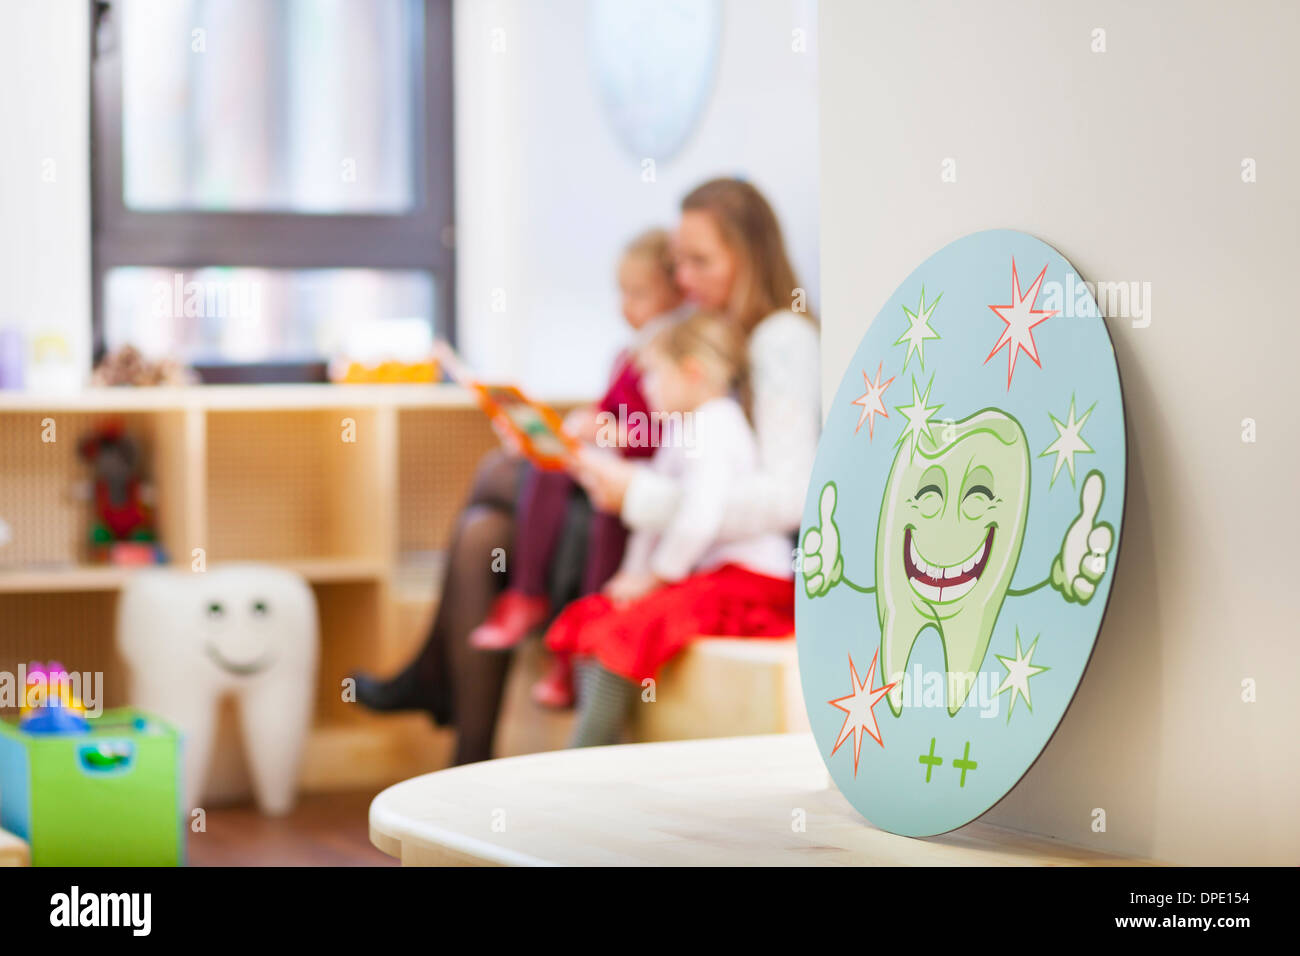 Family in dentists waiting room, picture of tooth in foreground Stock Photo